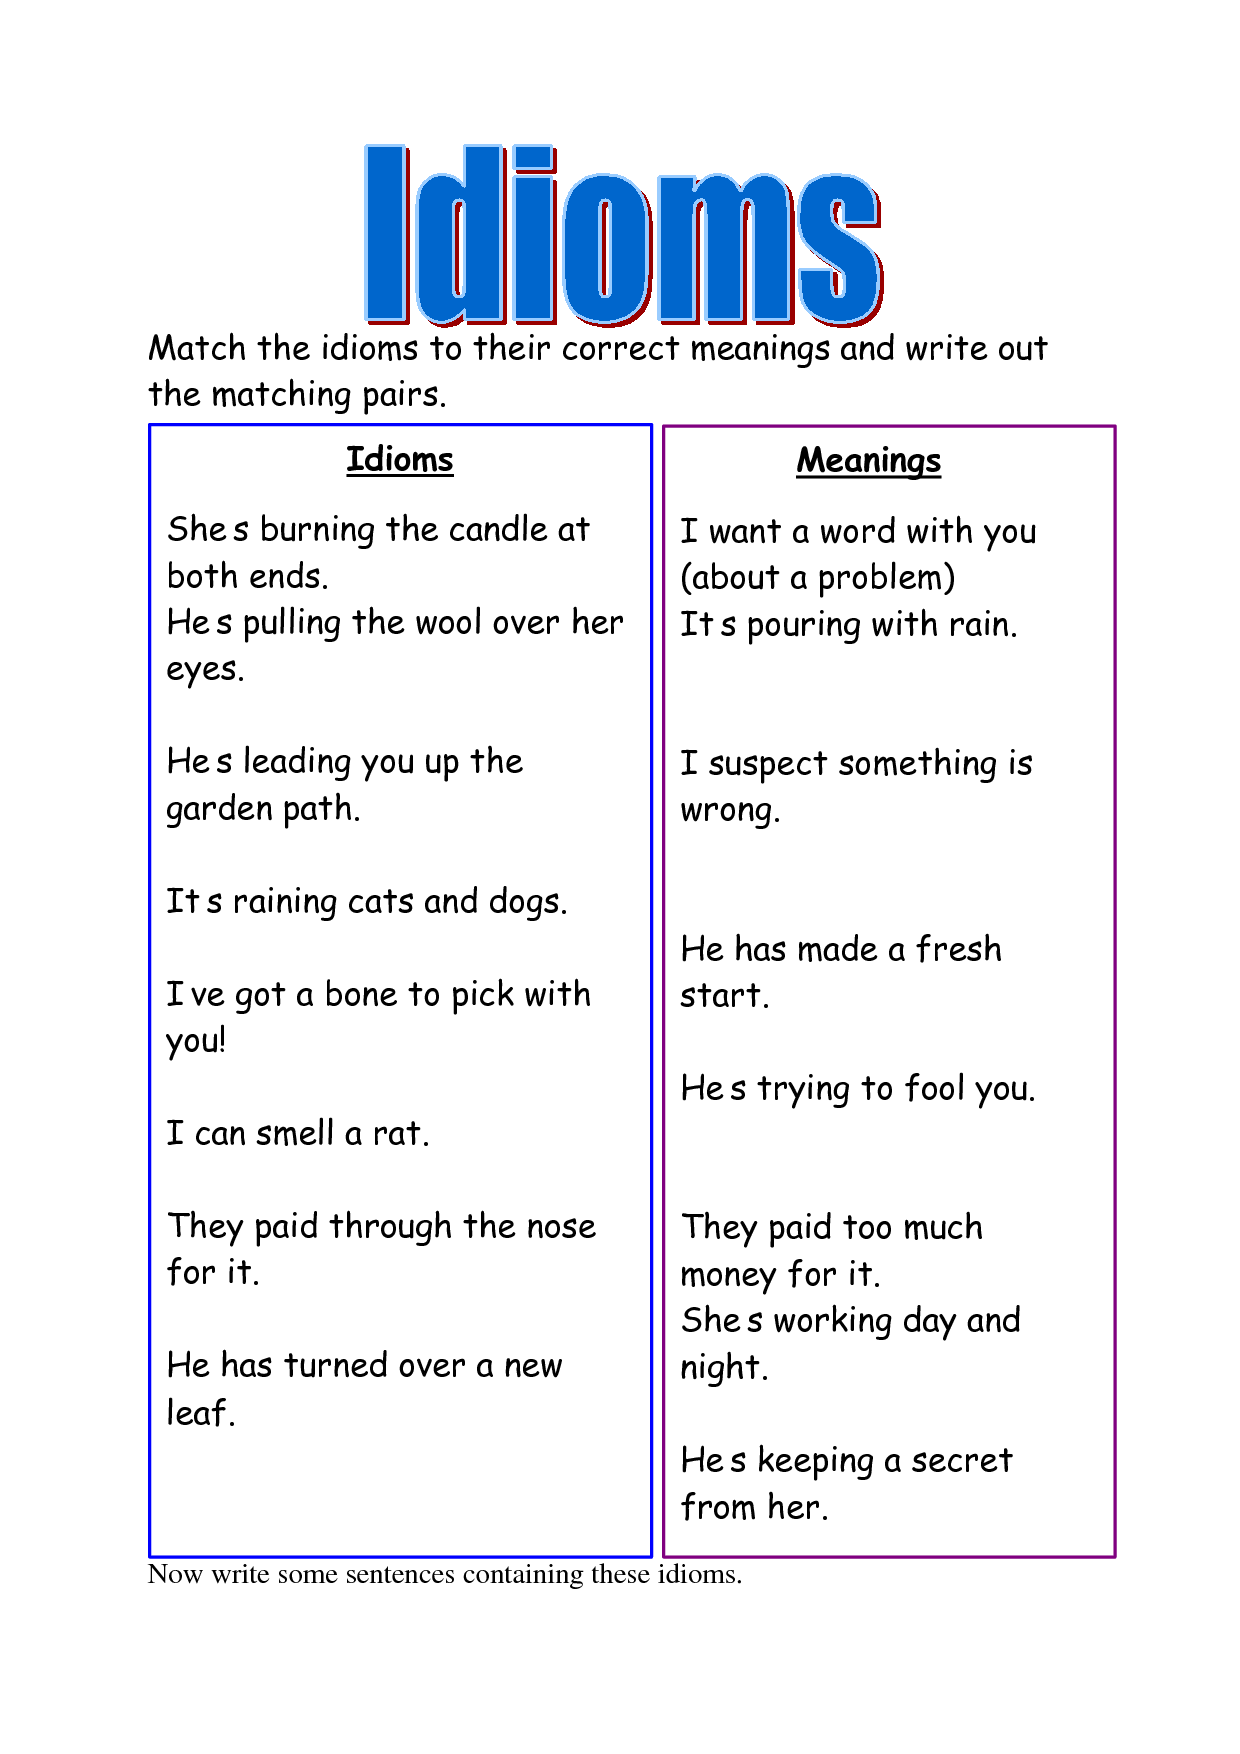 English Essays High School Years Teaching Ideas Th Grades Th Grade Reading Figurative  Language Science Essay Example also Essay About English Class Pin By Siavash Dan On Idioms  Pinterest  Idioms Figurative  Persuasive Essay Topics High School